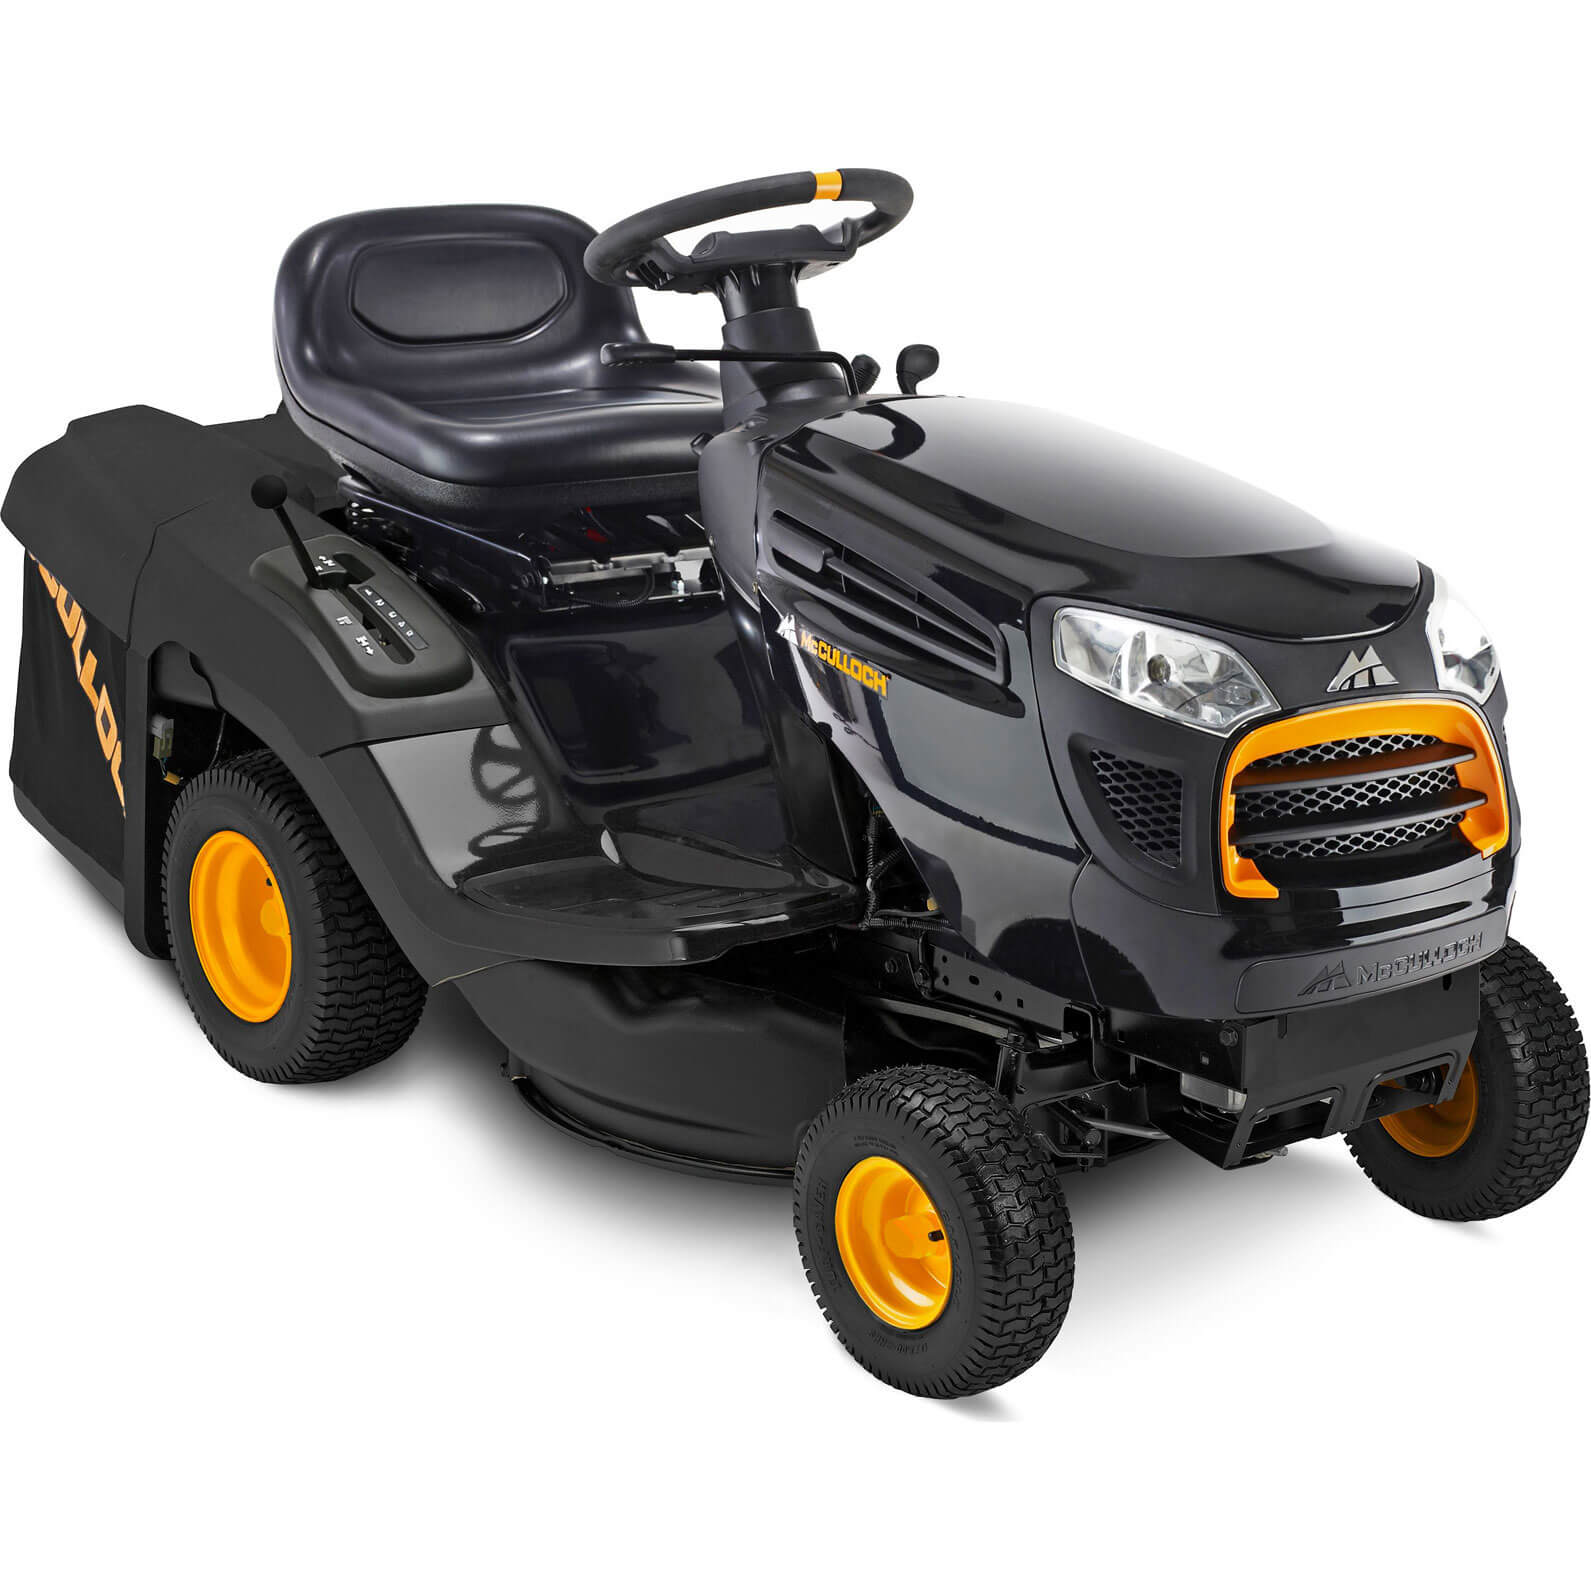 Image of McCulloch M115-77TC Petrol Ride On Lawnmower 77cm